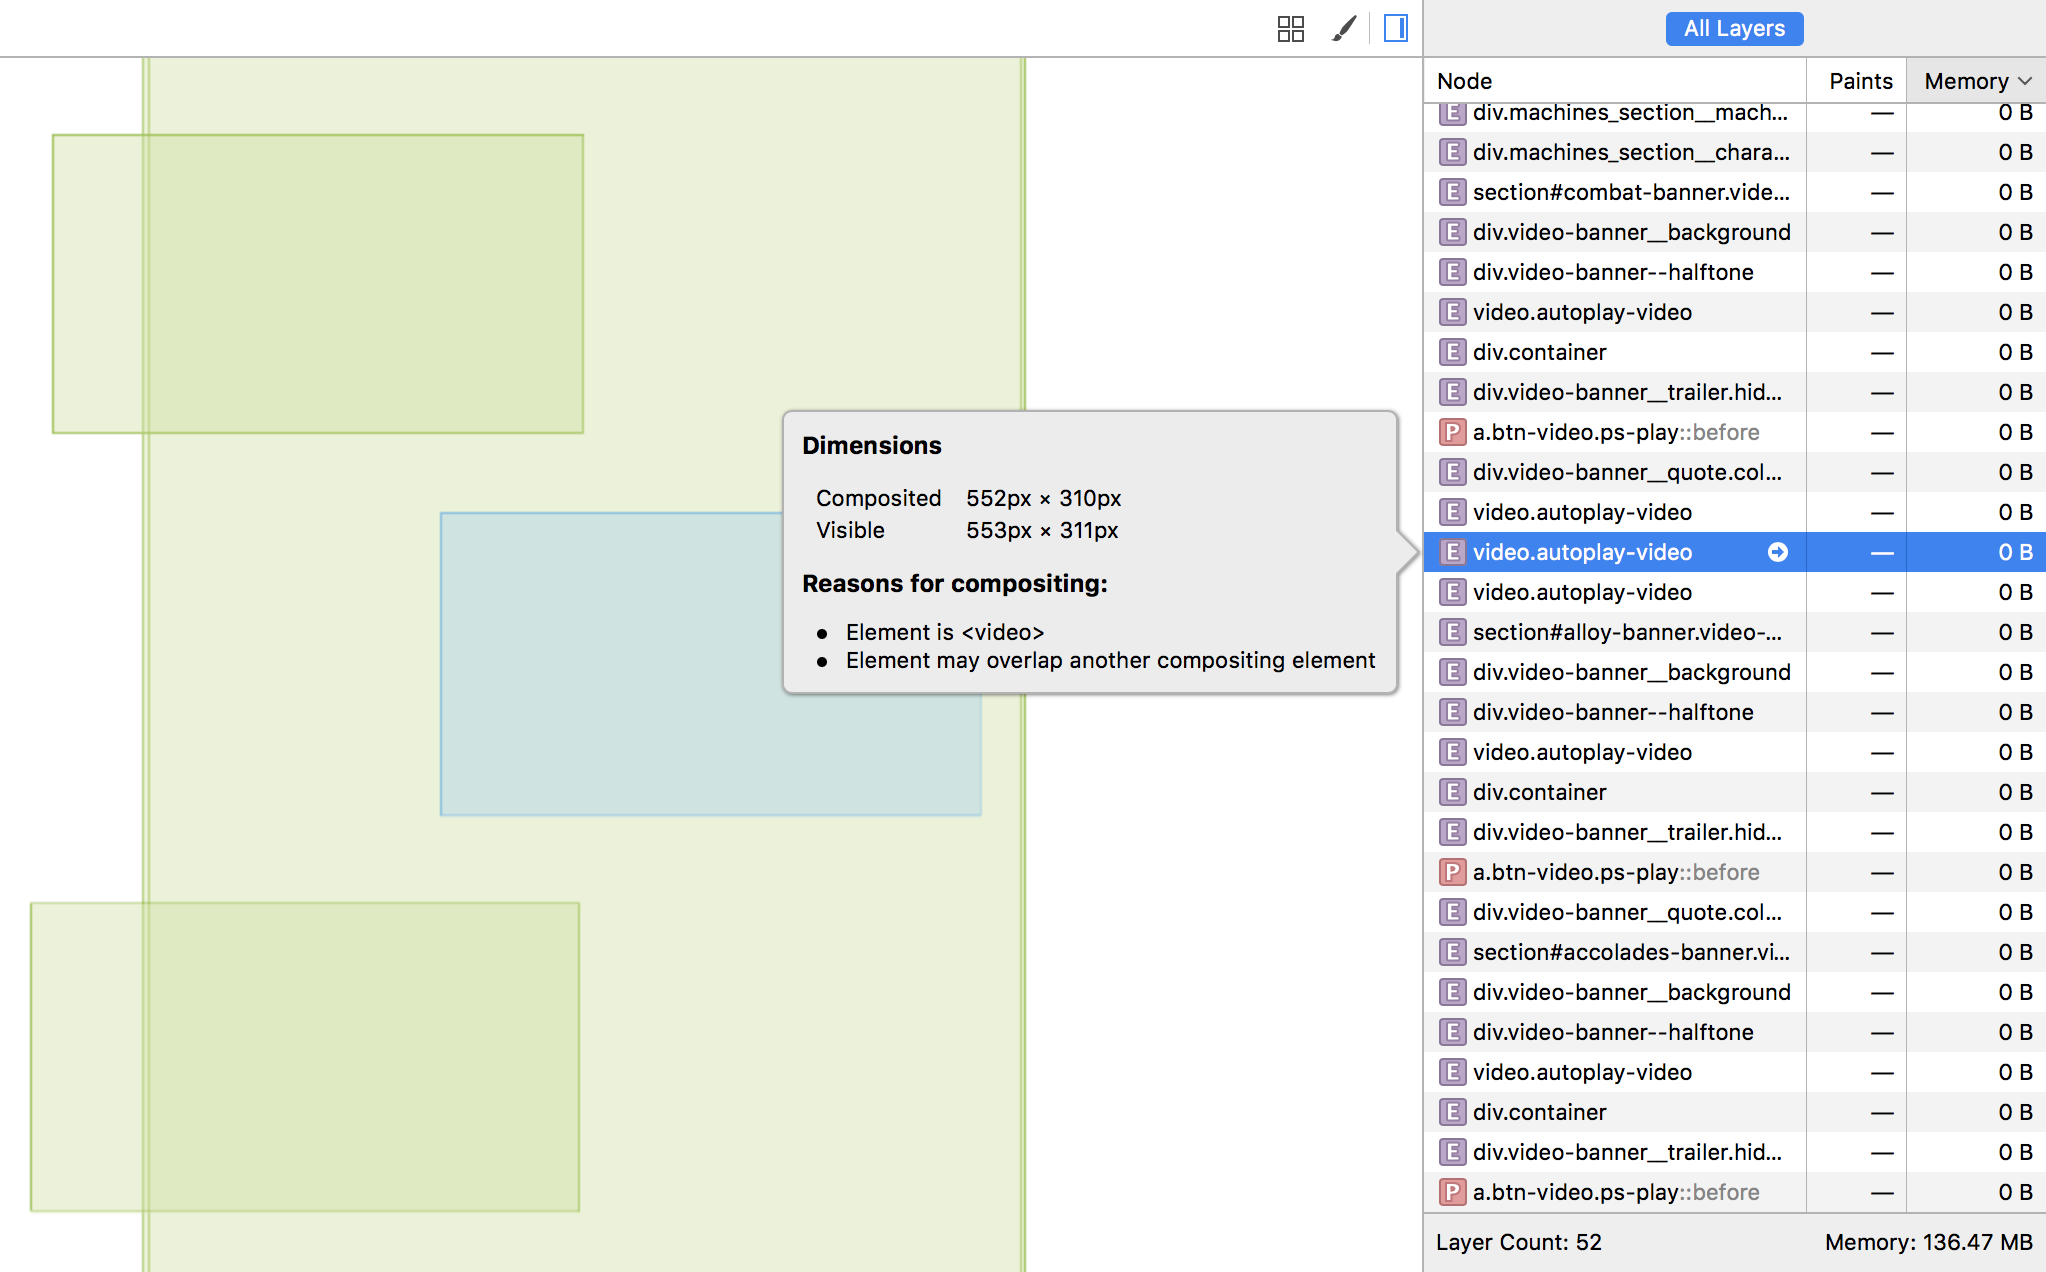 Visualizing Layers in Web Inspector | WebKit